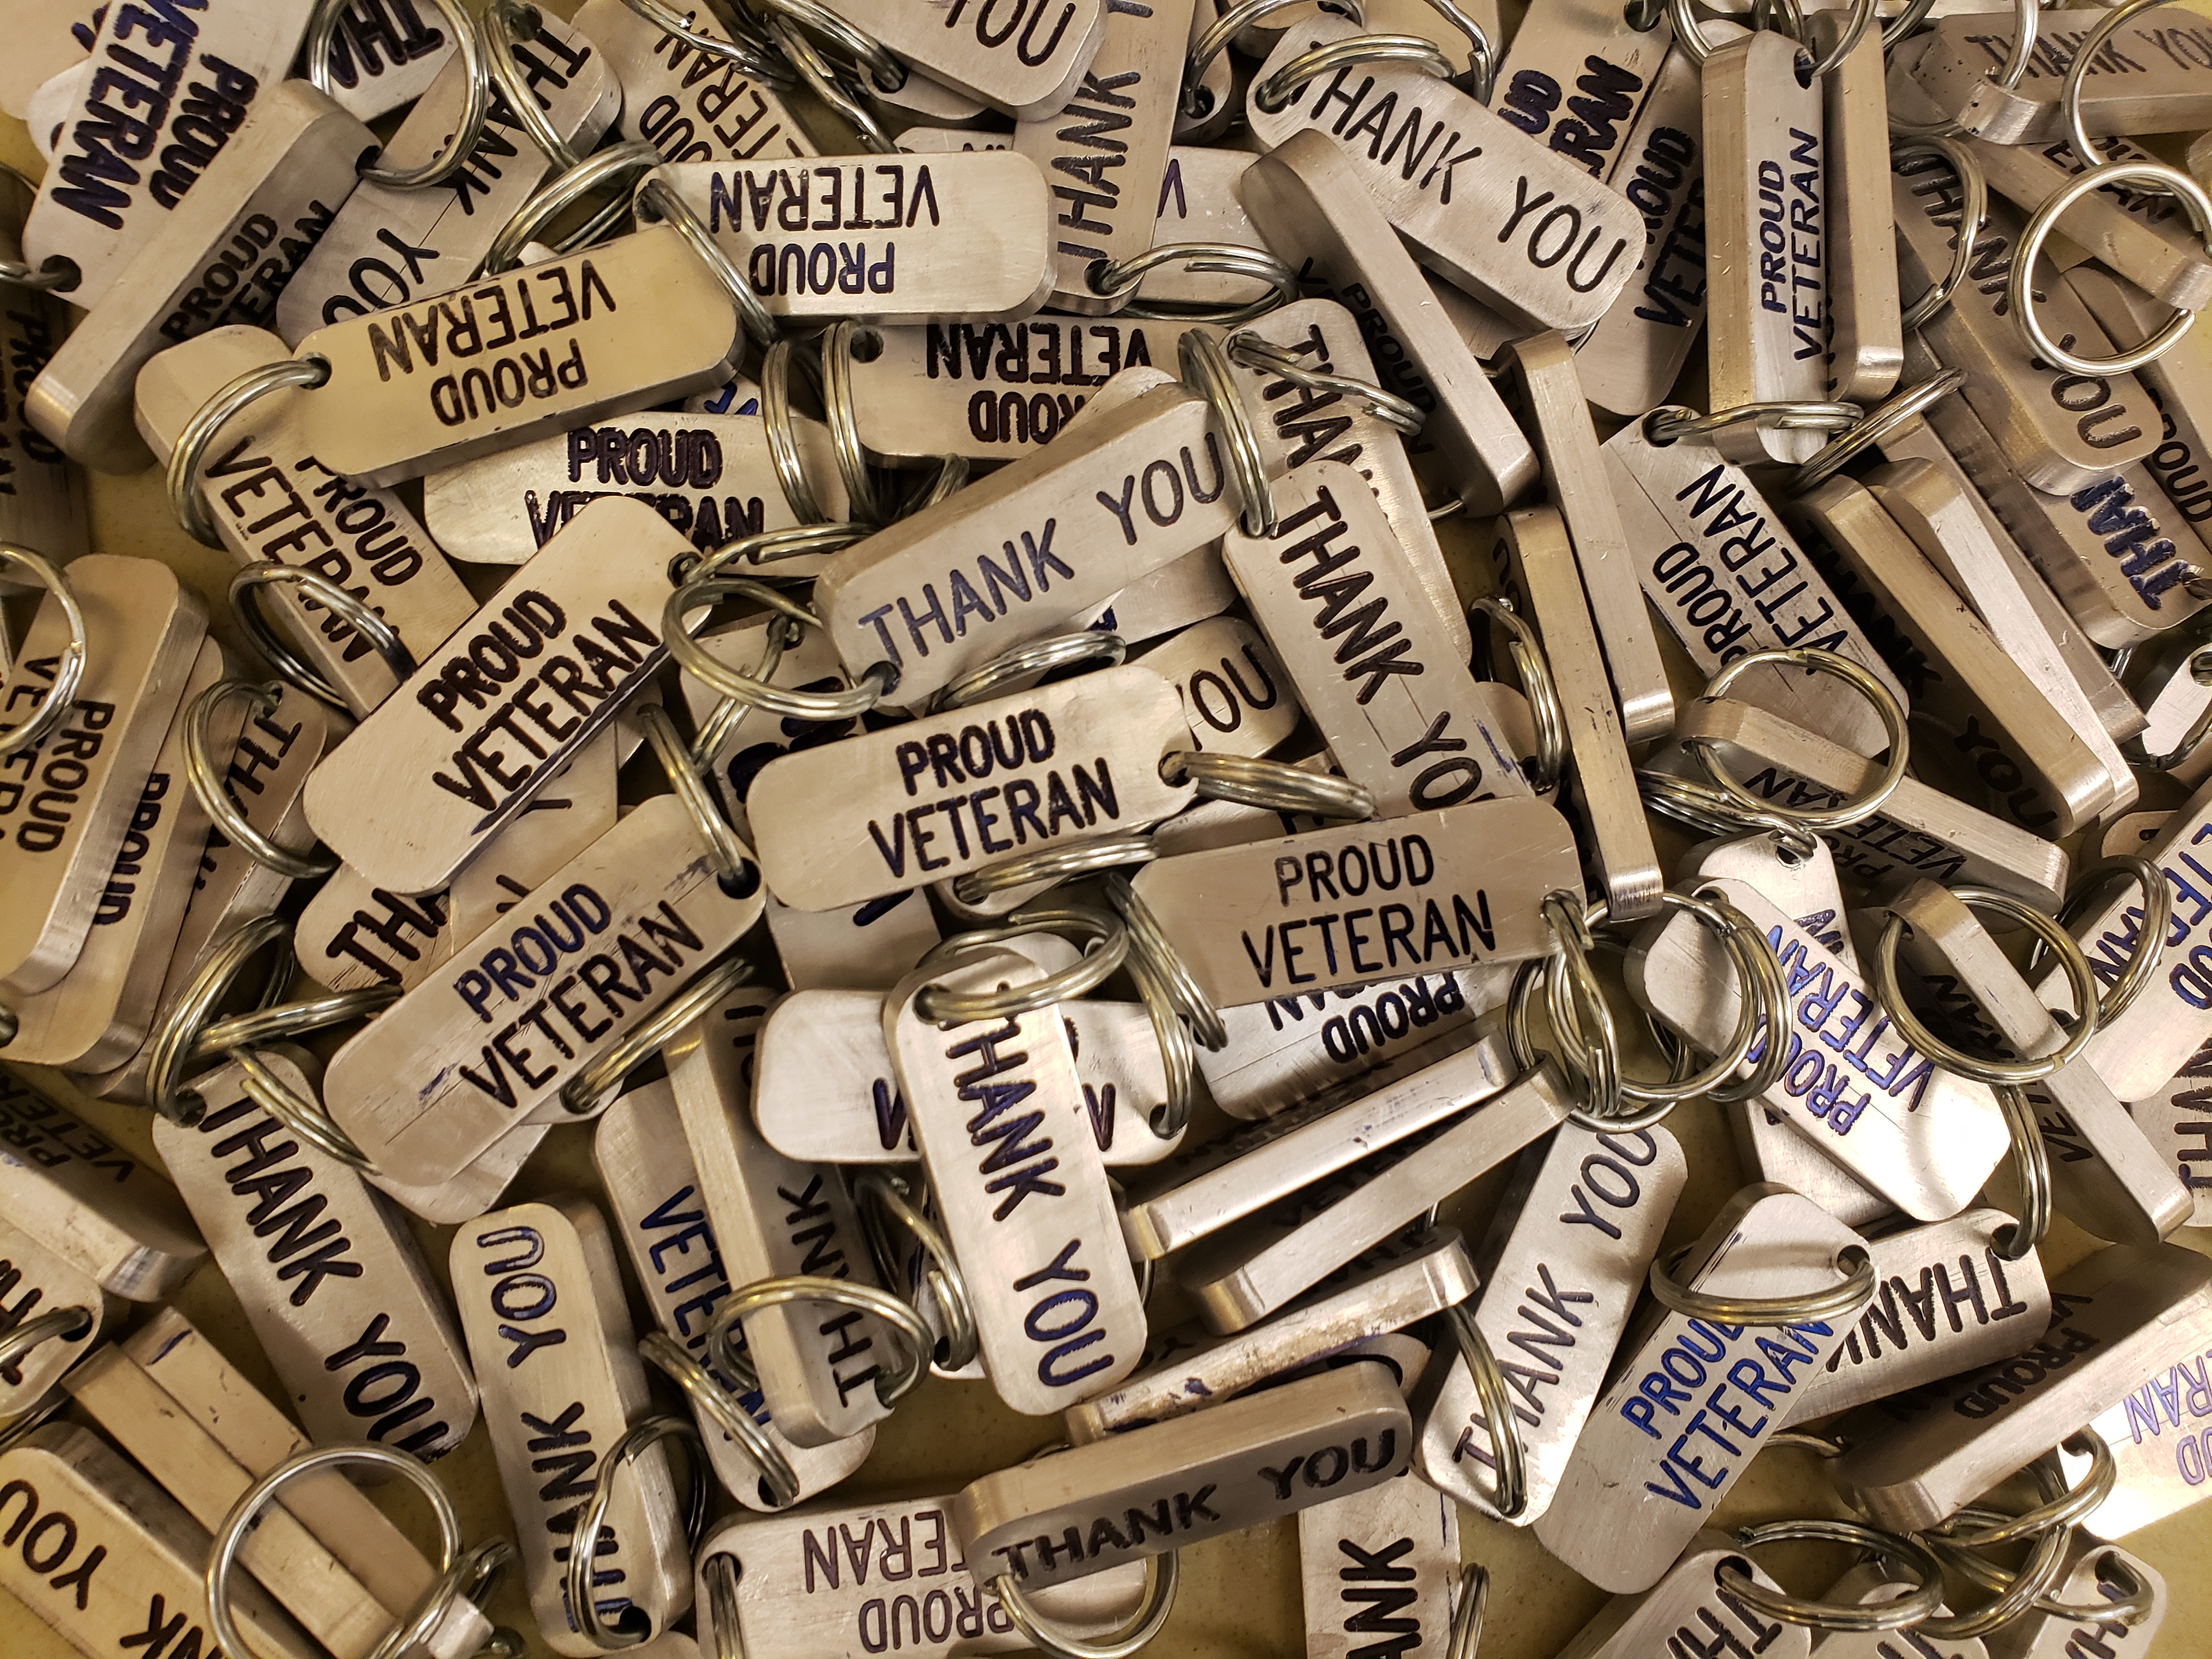 Machining students made 100 key chains for veterans.